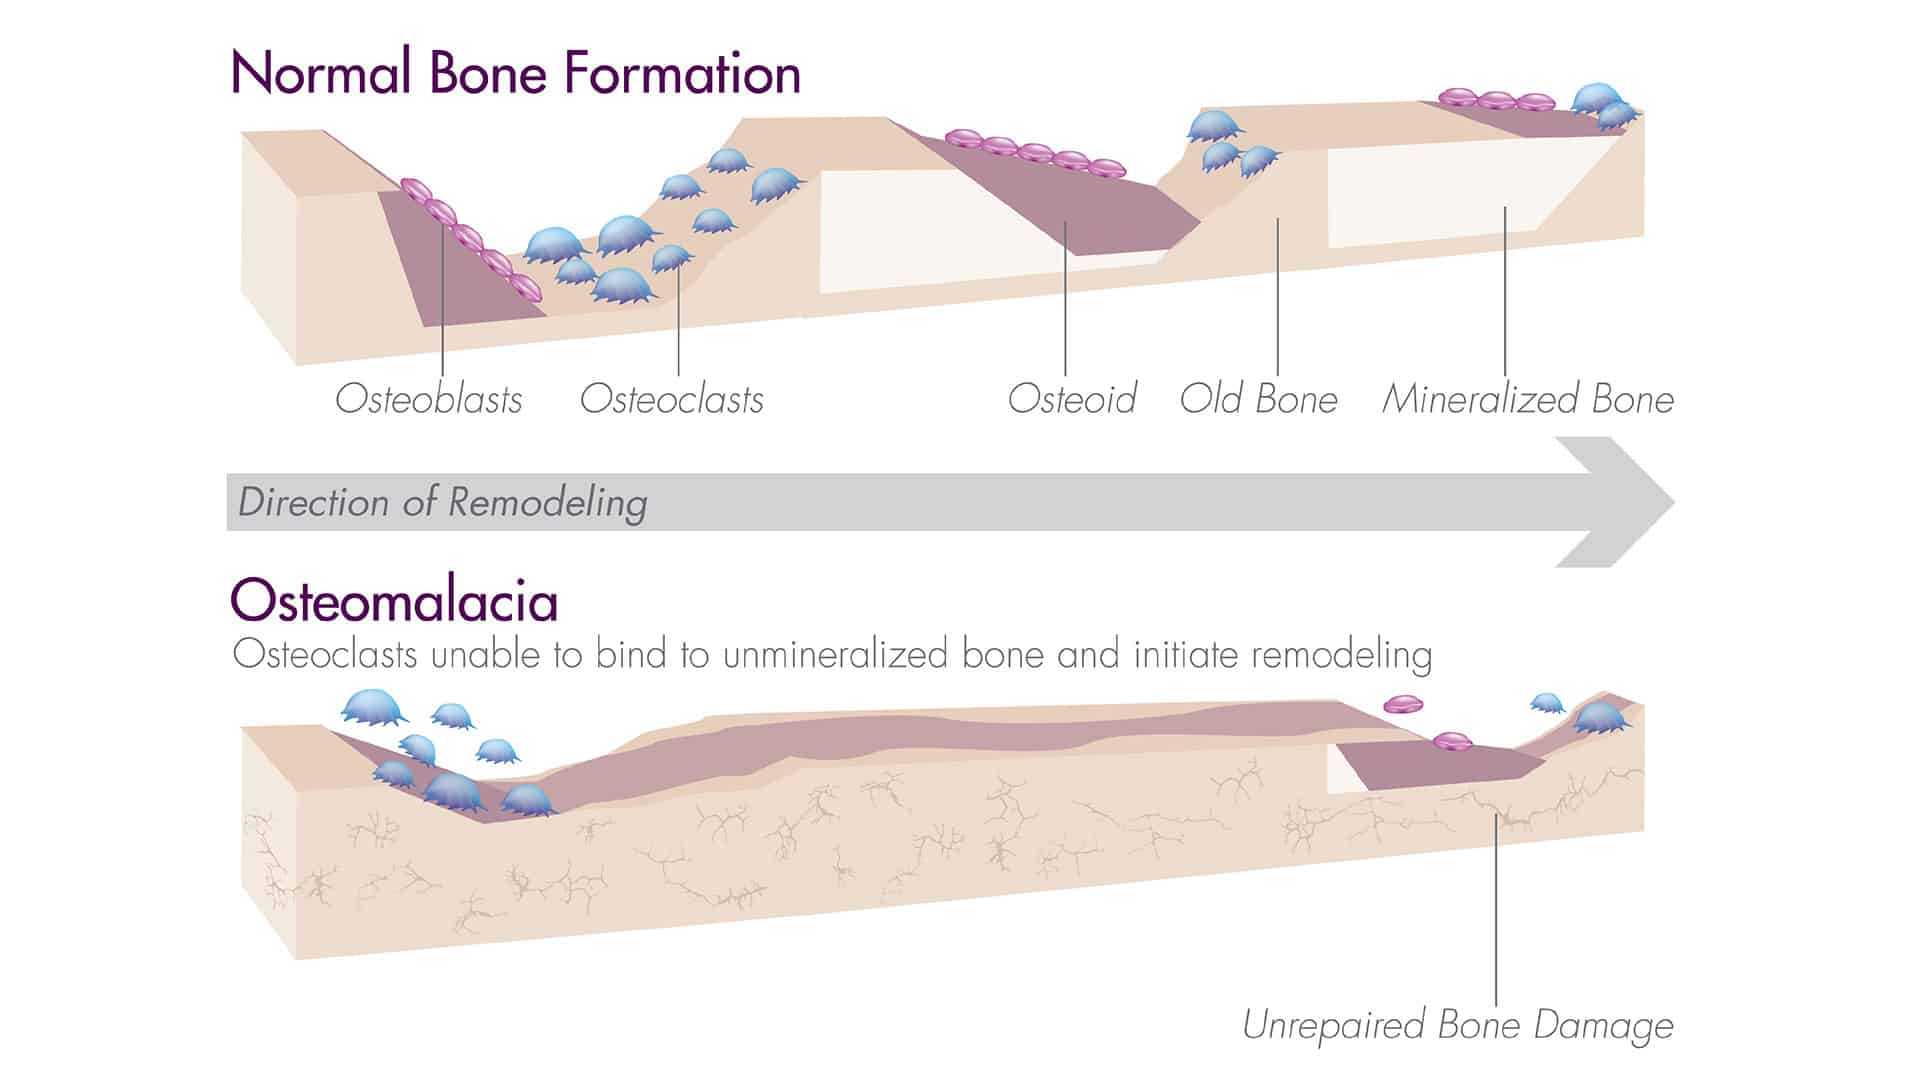 Osteomalacia Illustration